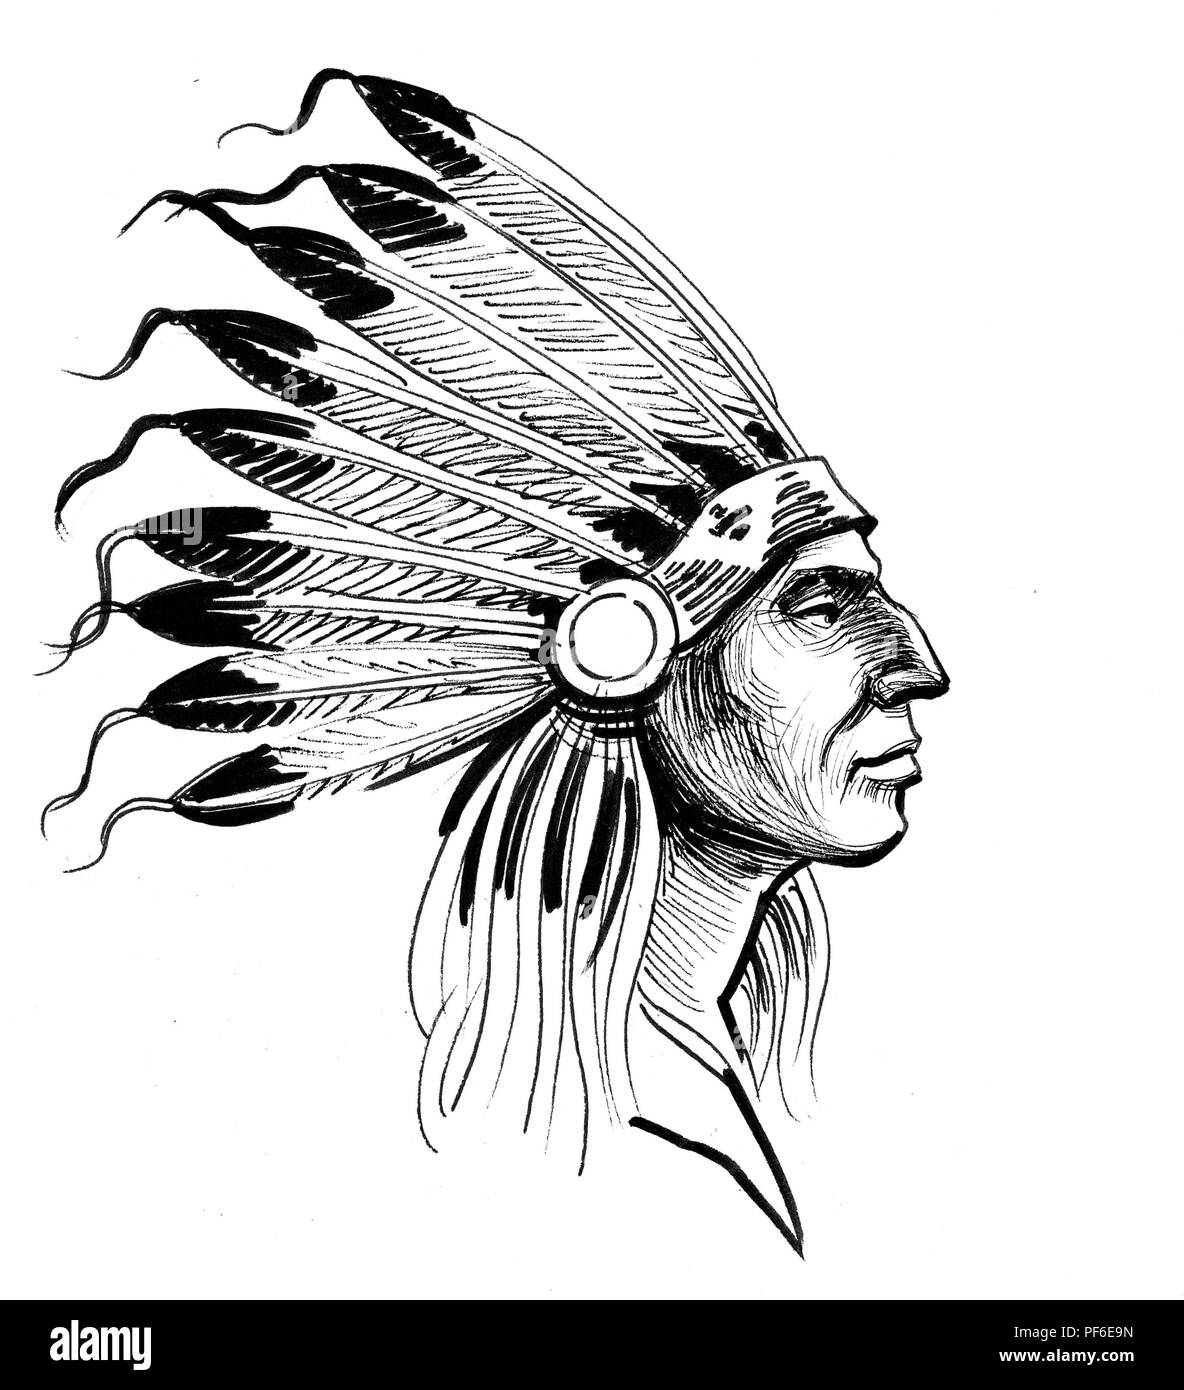 Indian Chief. Ink black and white illustration - Stock Image